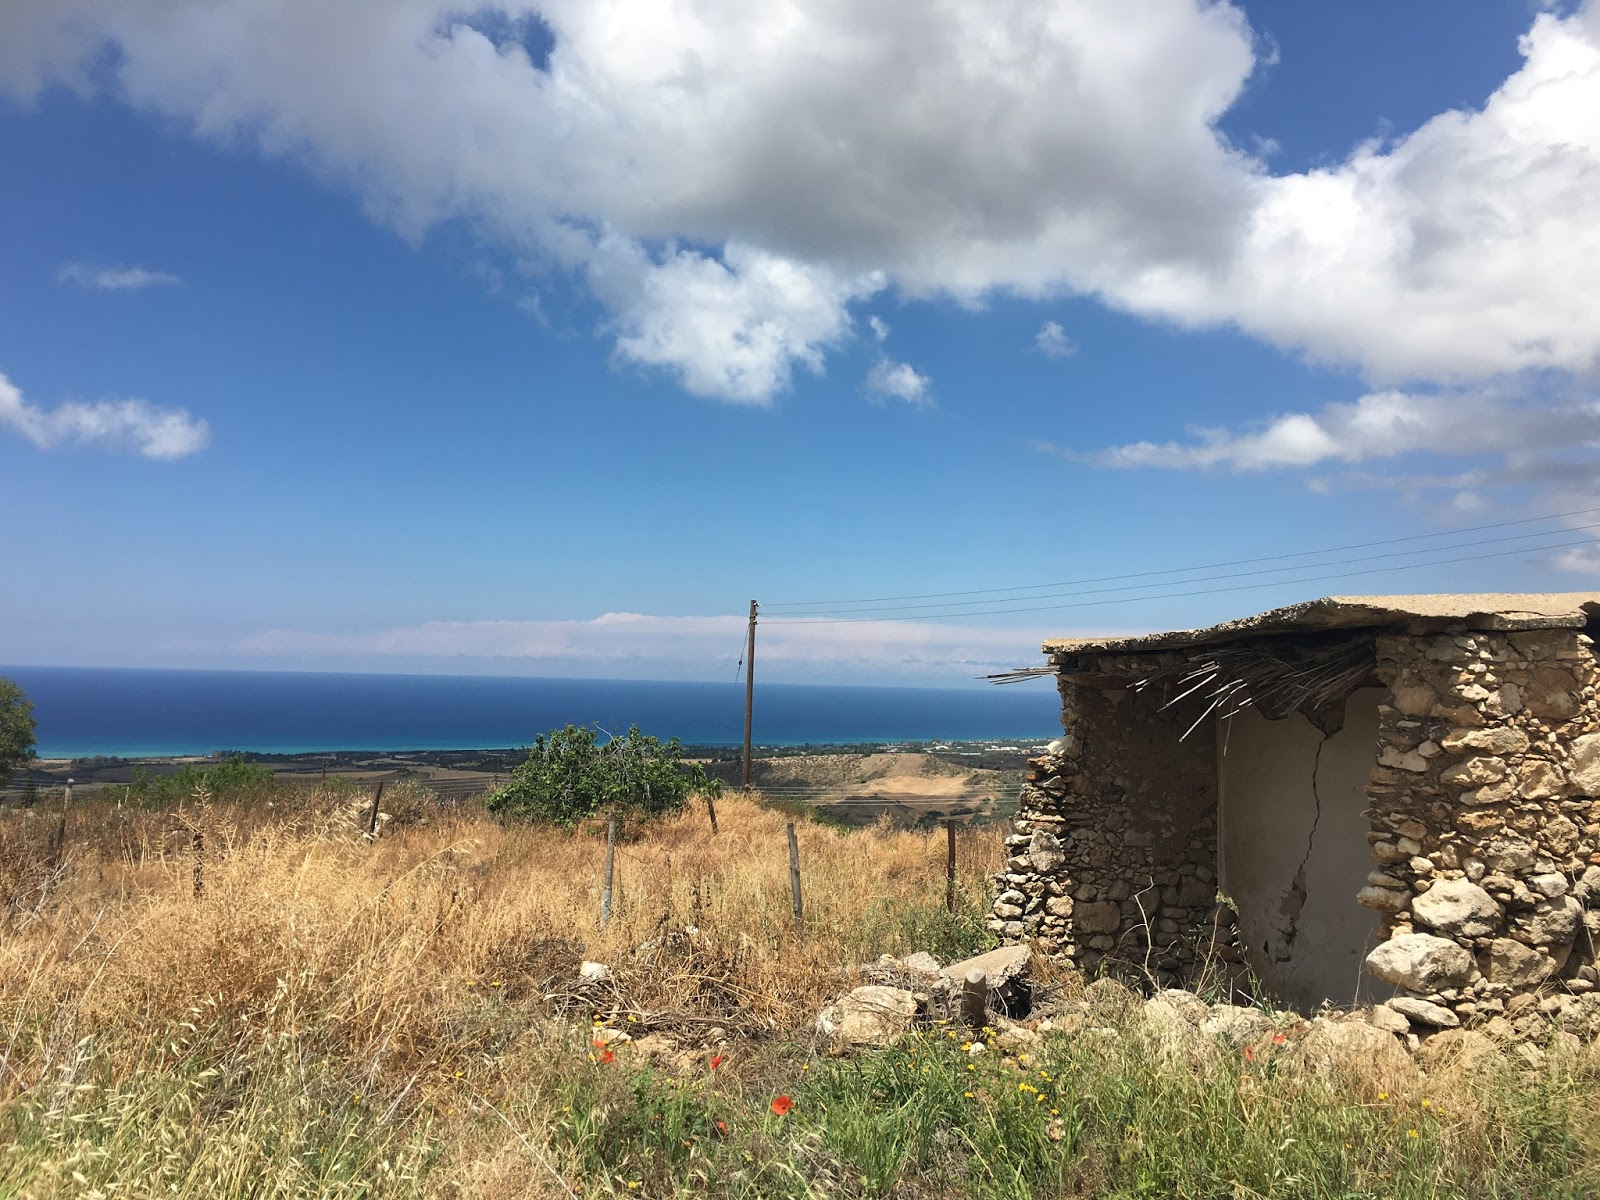 Sweet Allure: My Cyprus Photo Diary Part 1